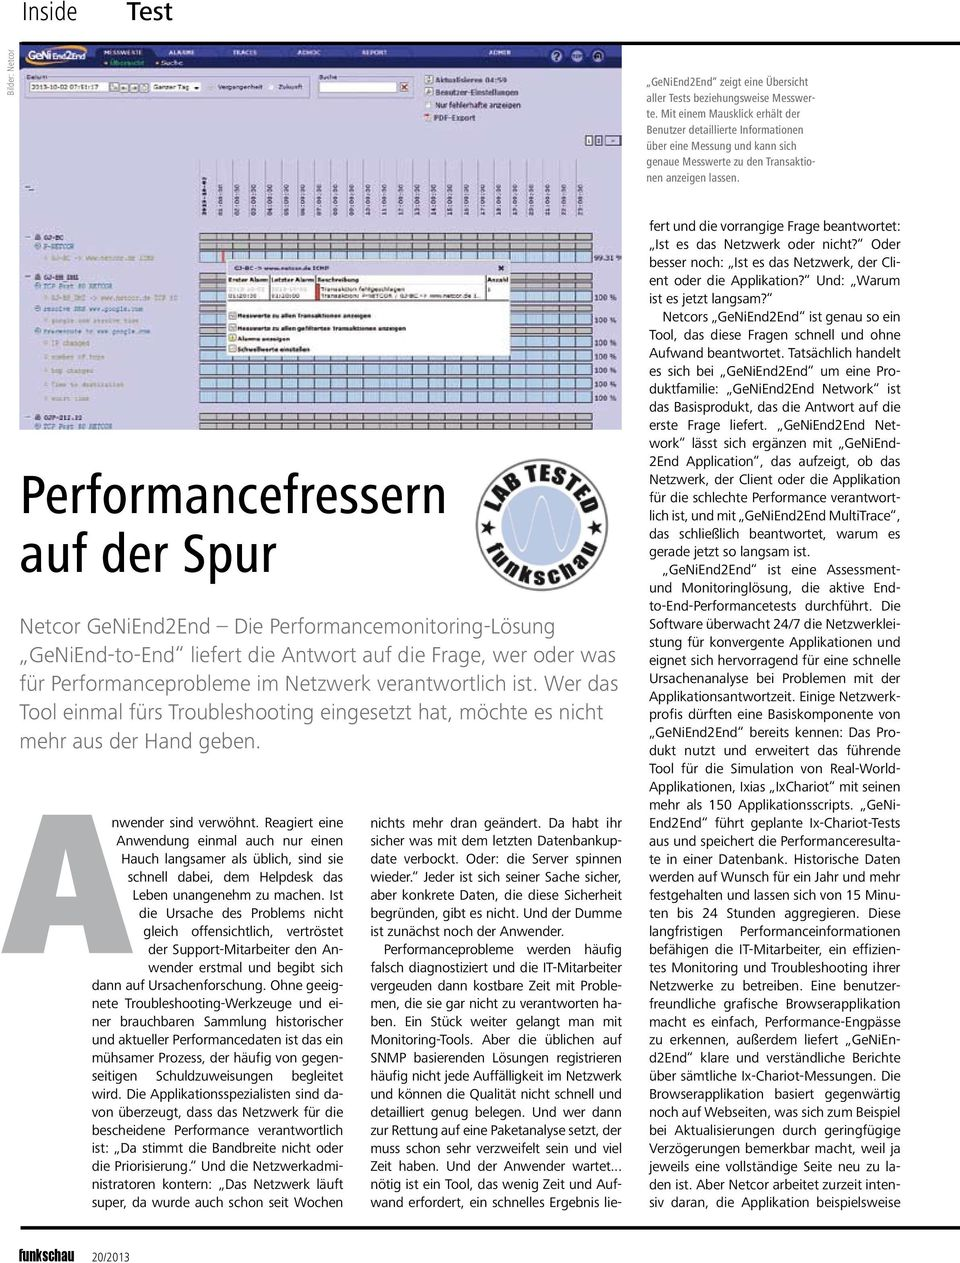 Performancefressern auf der Spur Netcor GeNiEnd2End Die Performancemonitoring-Lösung GeNiEnd-to-End liefert die Antwort auf die Frage, wer oder was für Performanceprobleme im Netzwerk verantwortlich